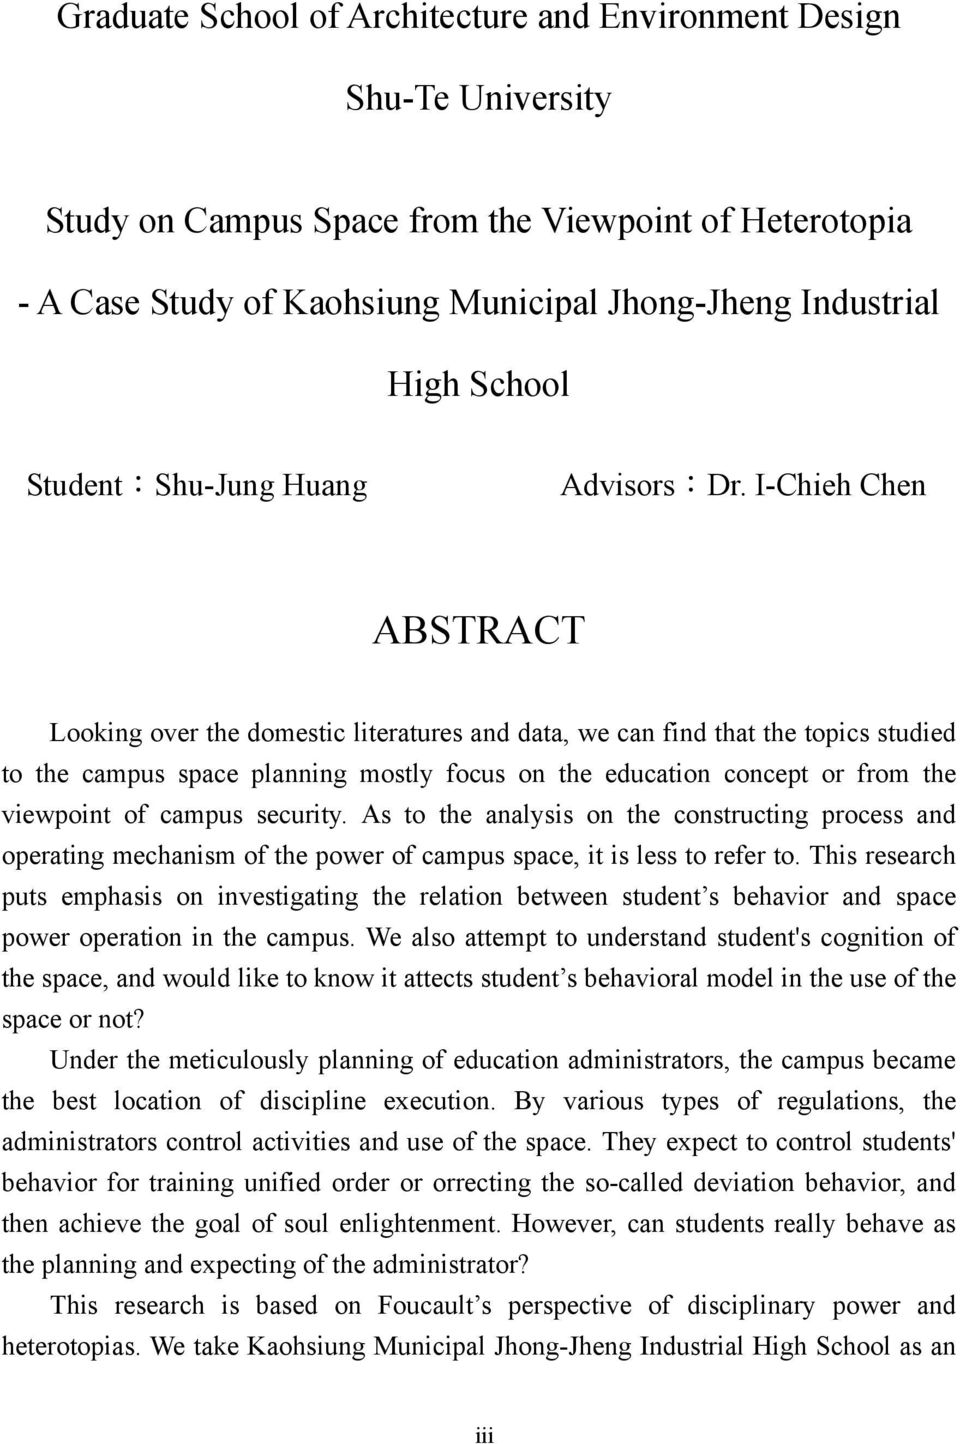 I-Chieh Chen ABSTRACT Looking over the domestic literatures and data, we can find that the topics studied to the campus space planning mostly focus on the education concept or from the viewpoint of